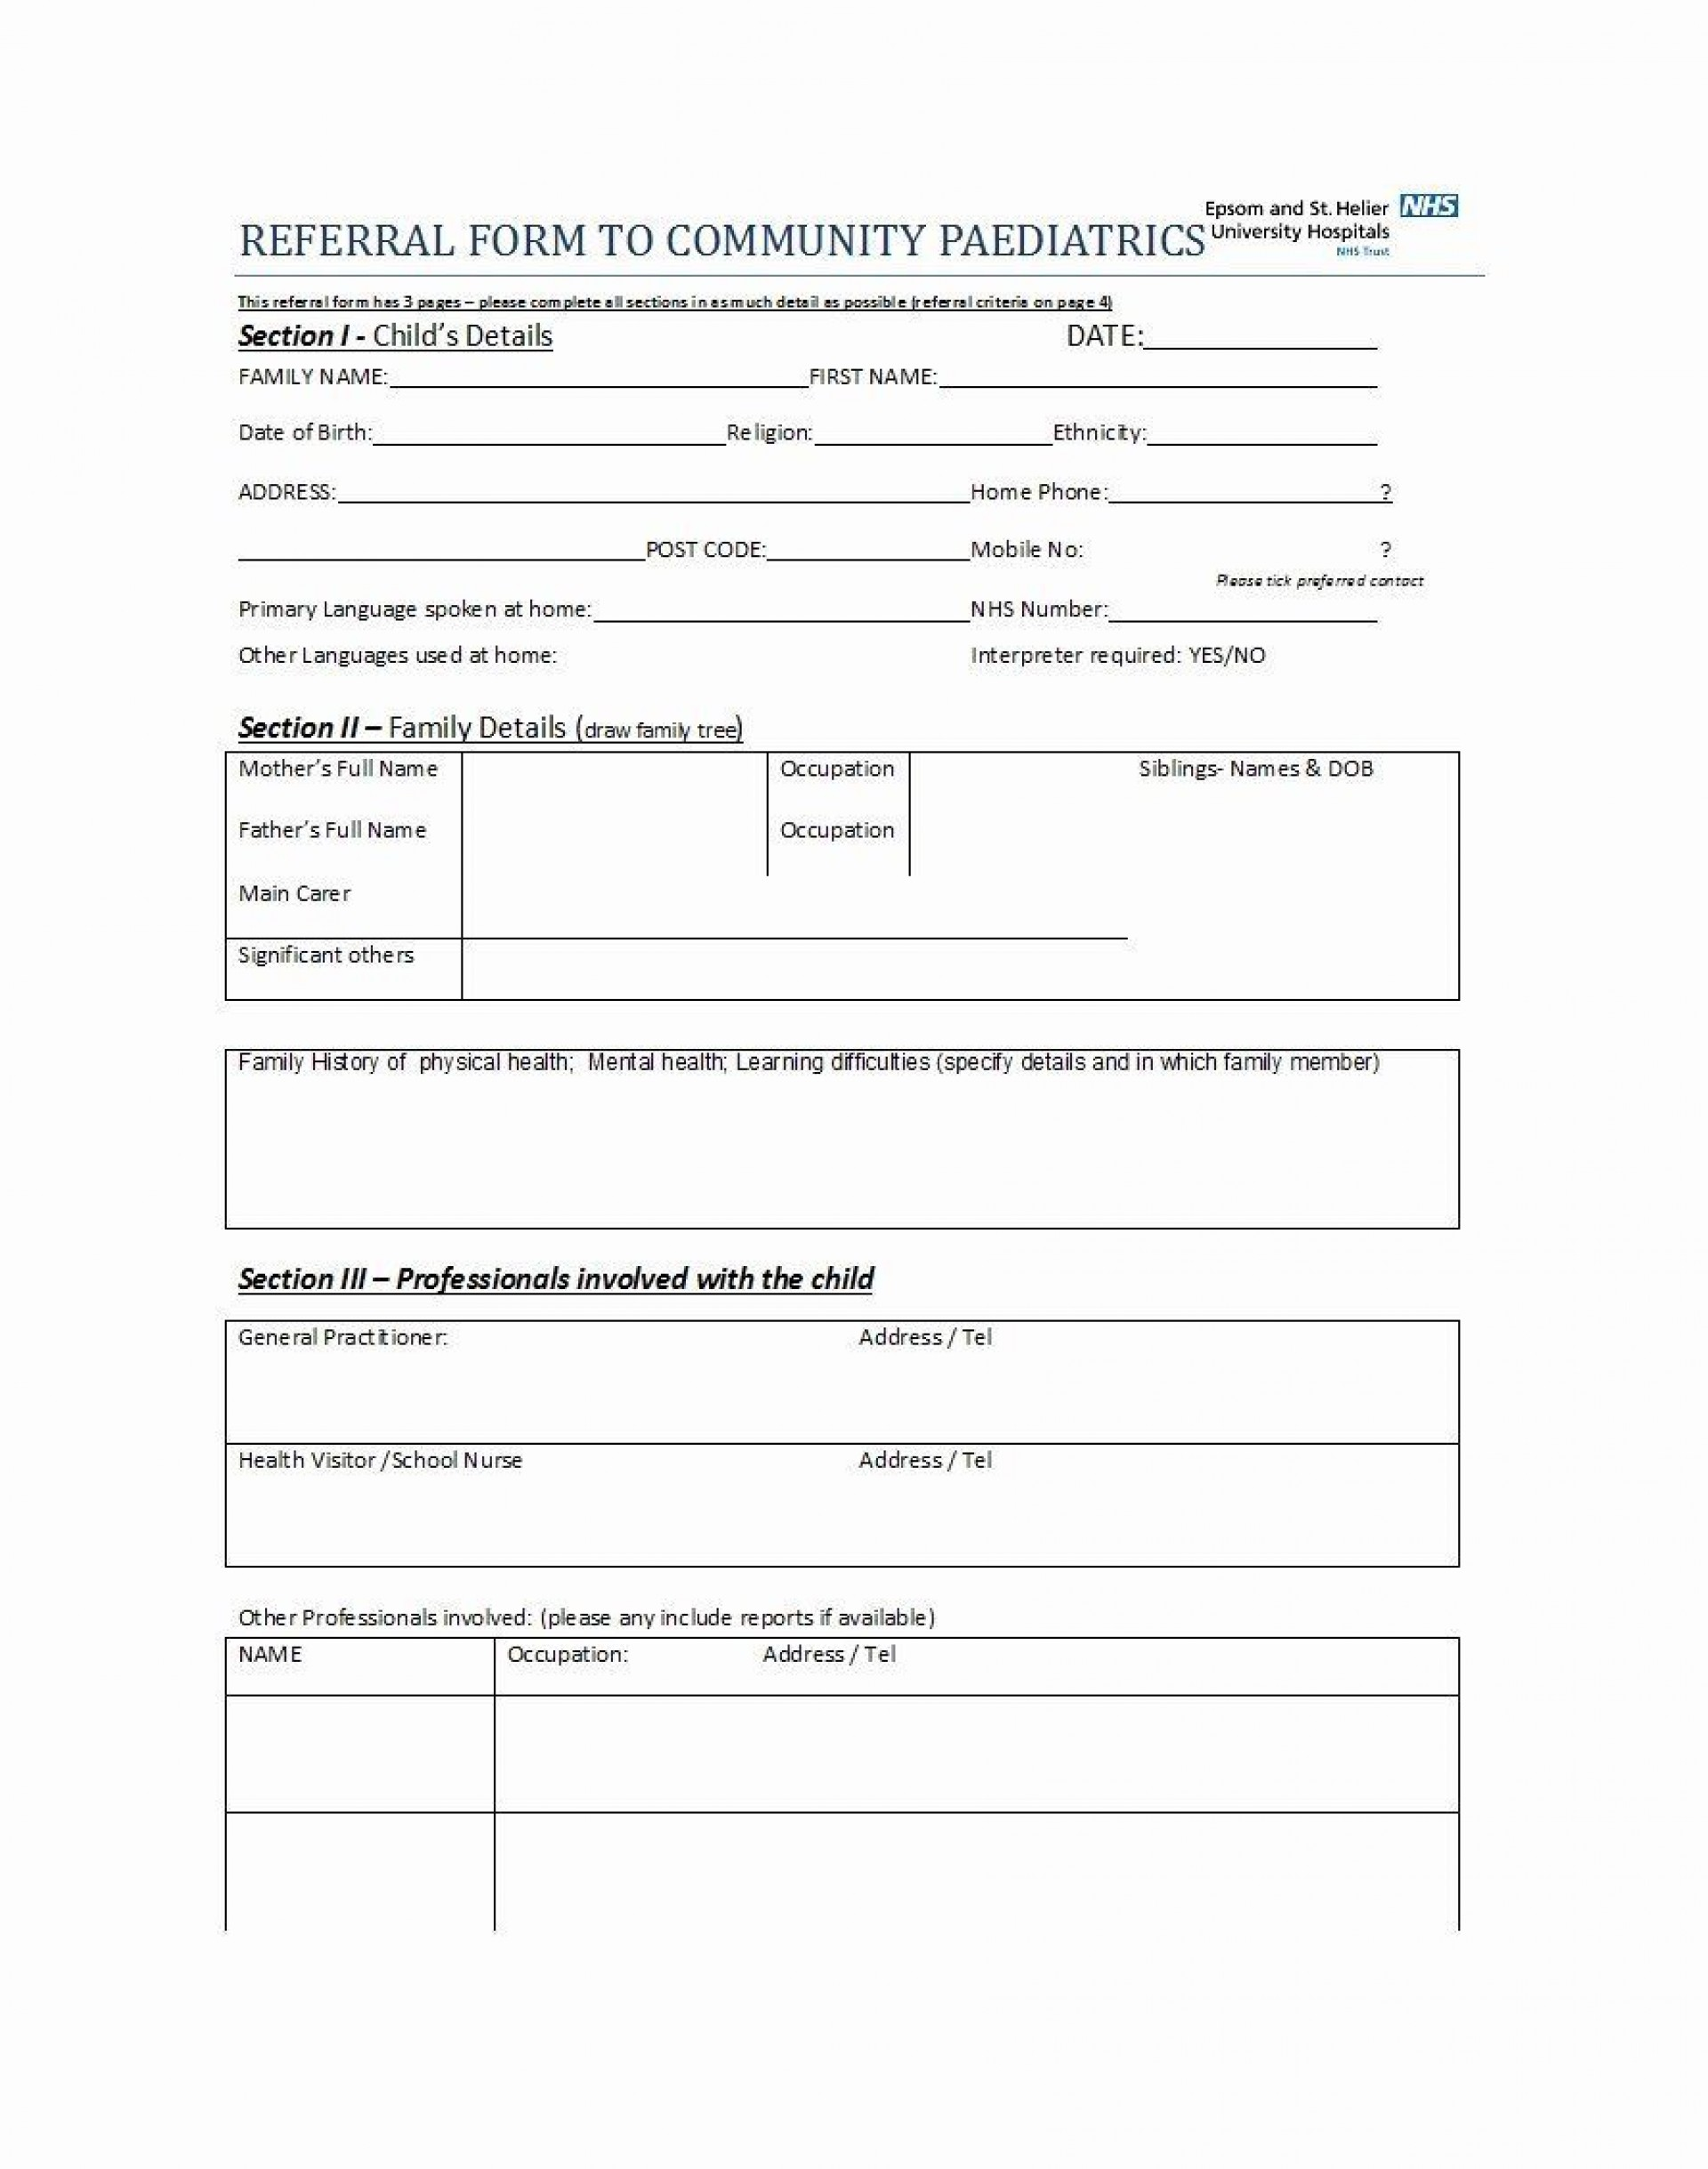 002 Incredible Medical Referral Form Template Highest Quality  Dental Patient Doctor Free Physician1920